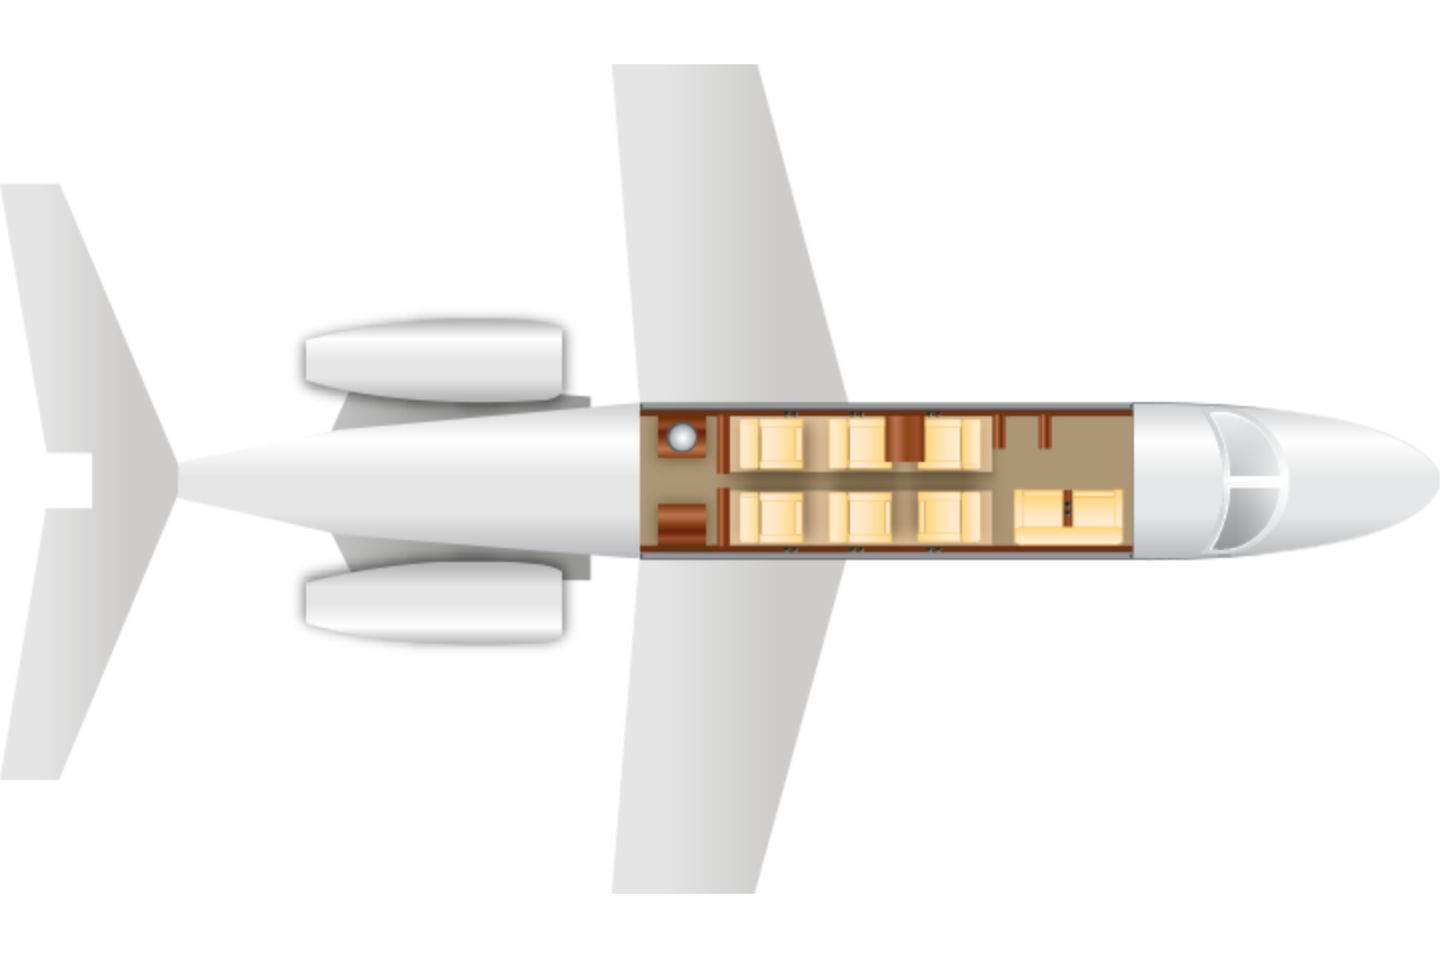 citation-iii-transparent-1412620300.png Floor Plan View